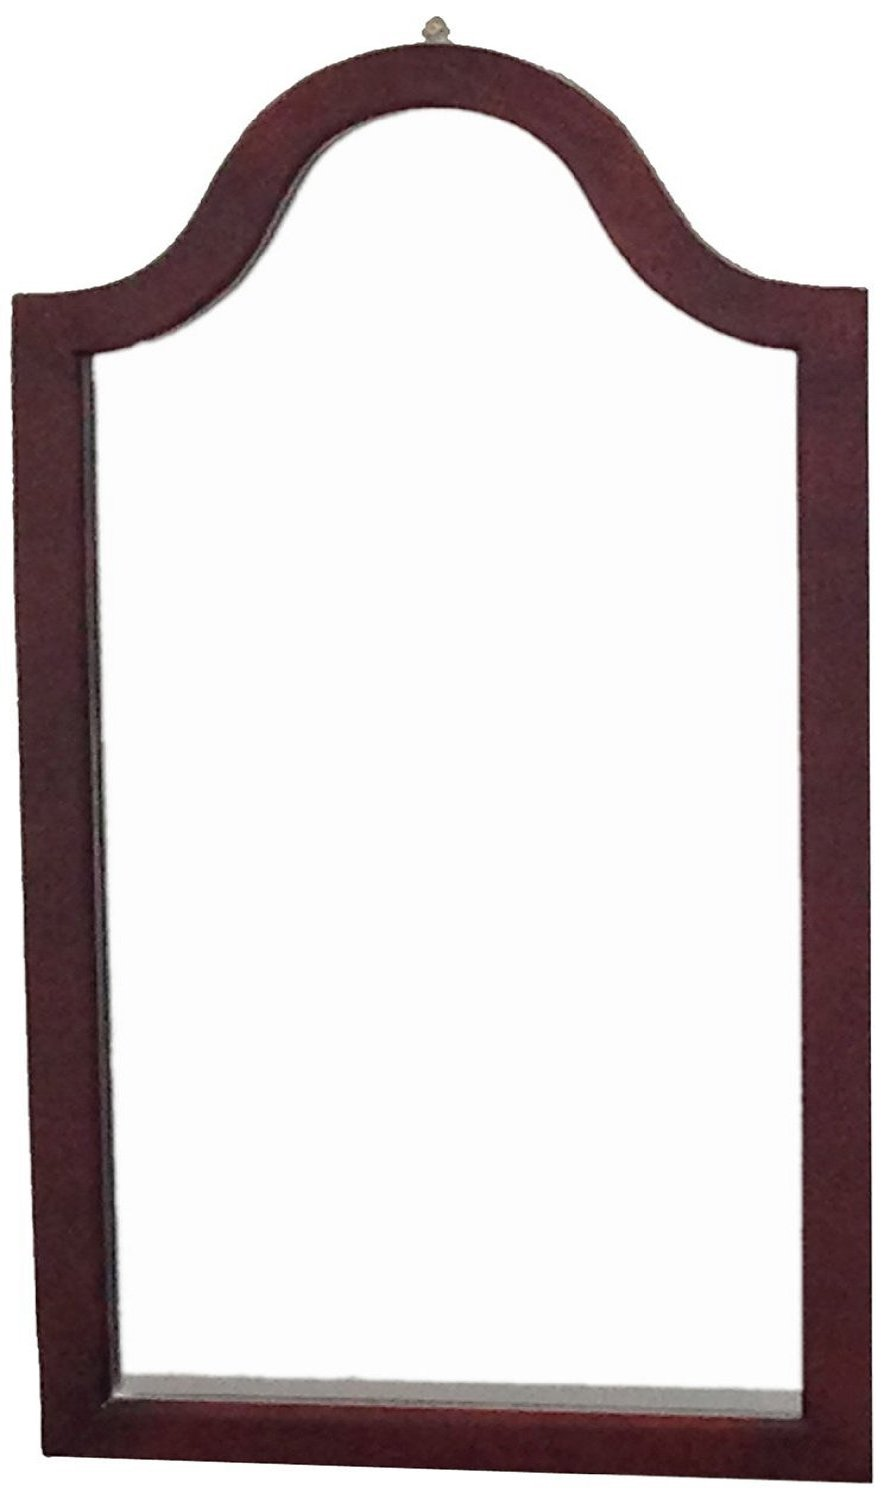 Frenchi Home Furnishing Wall Mirror